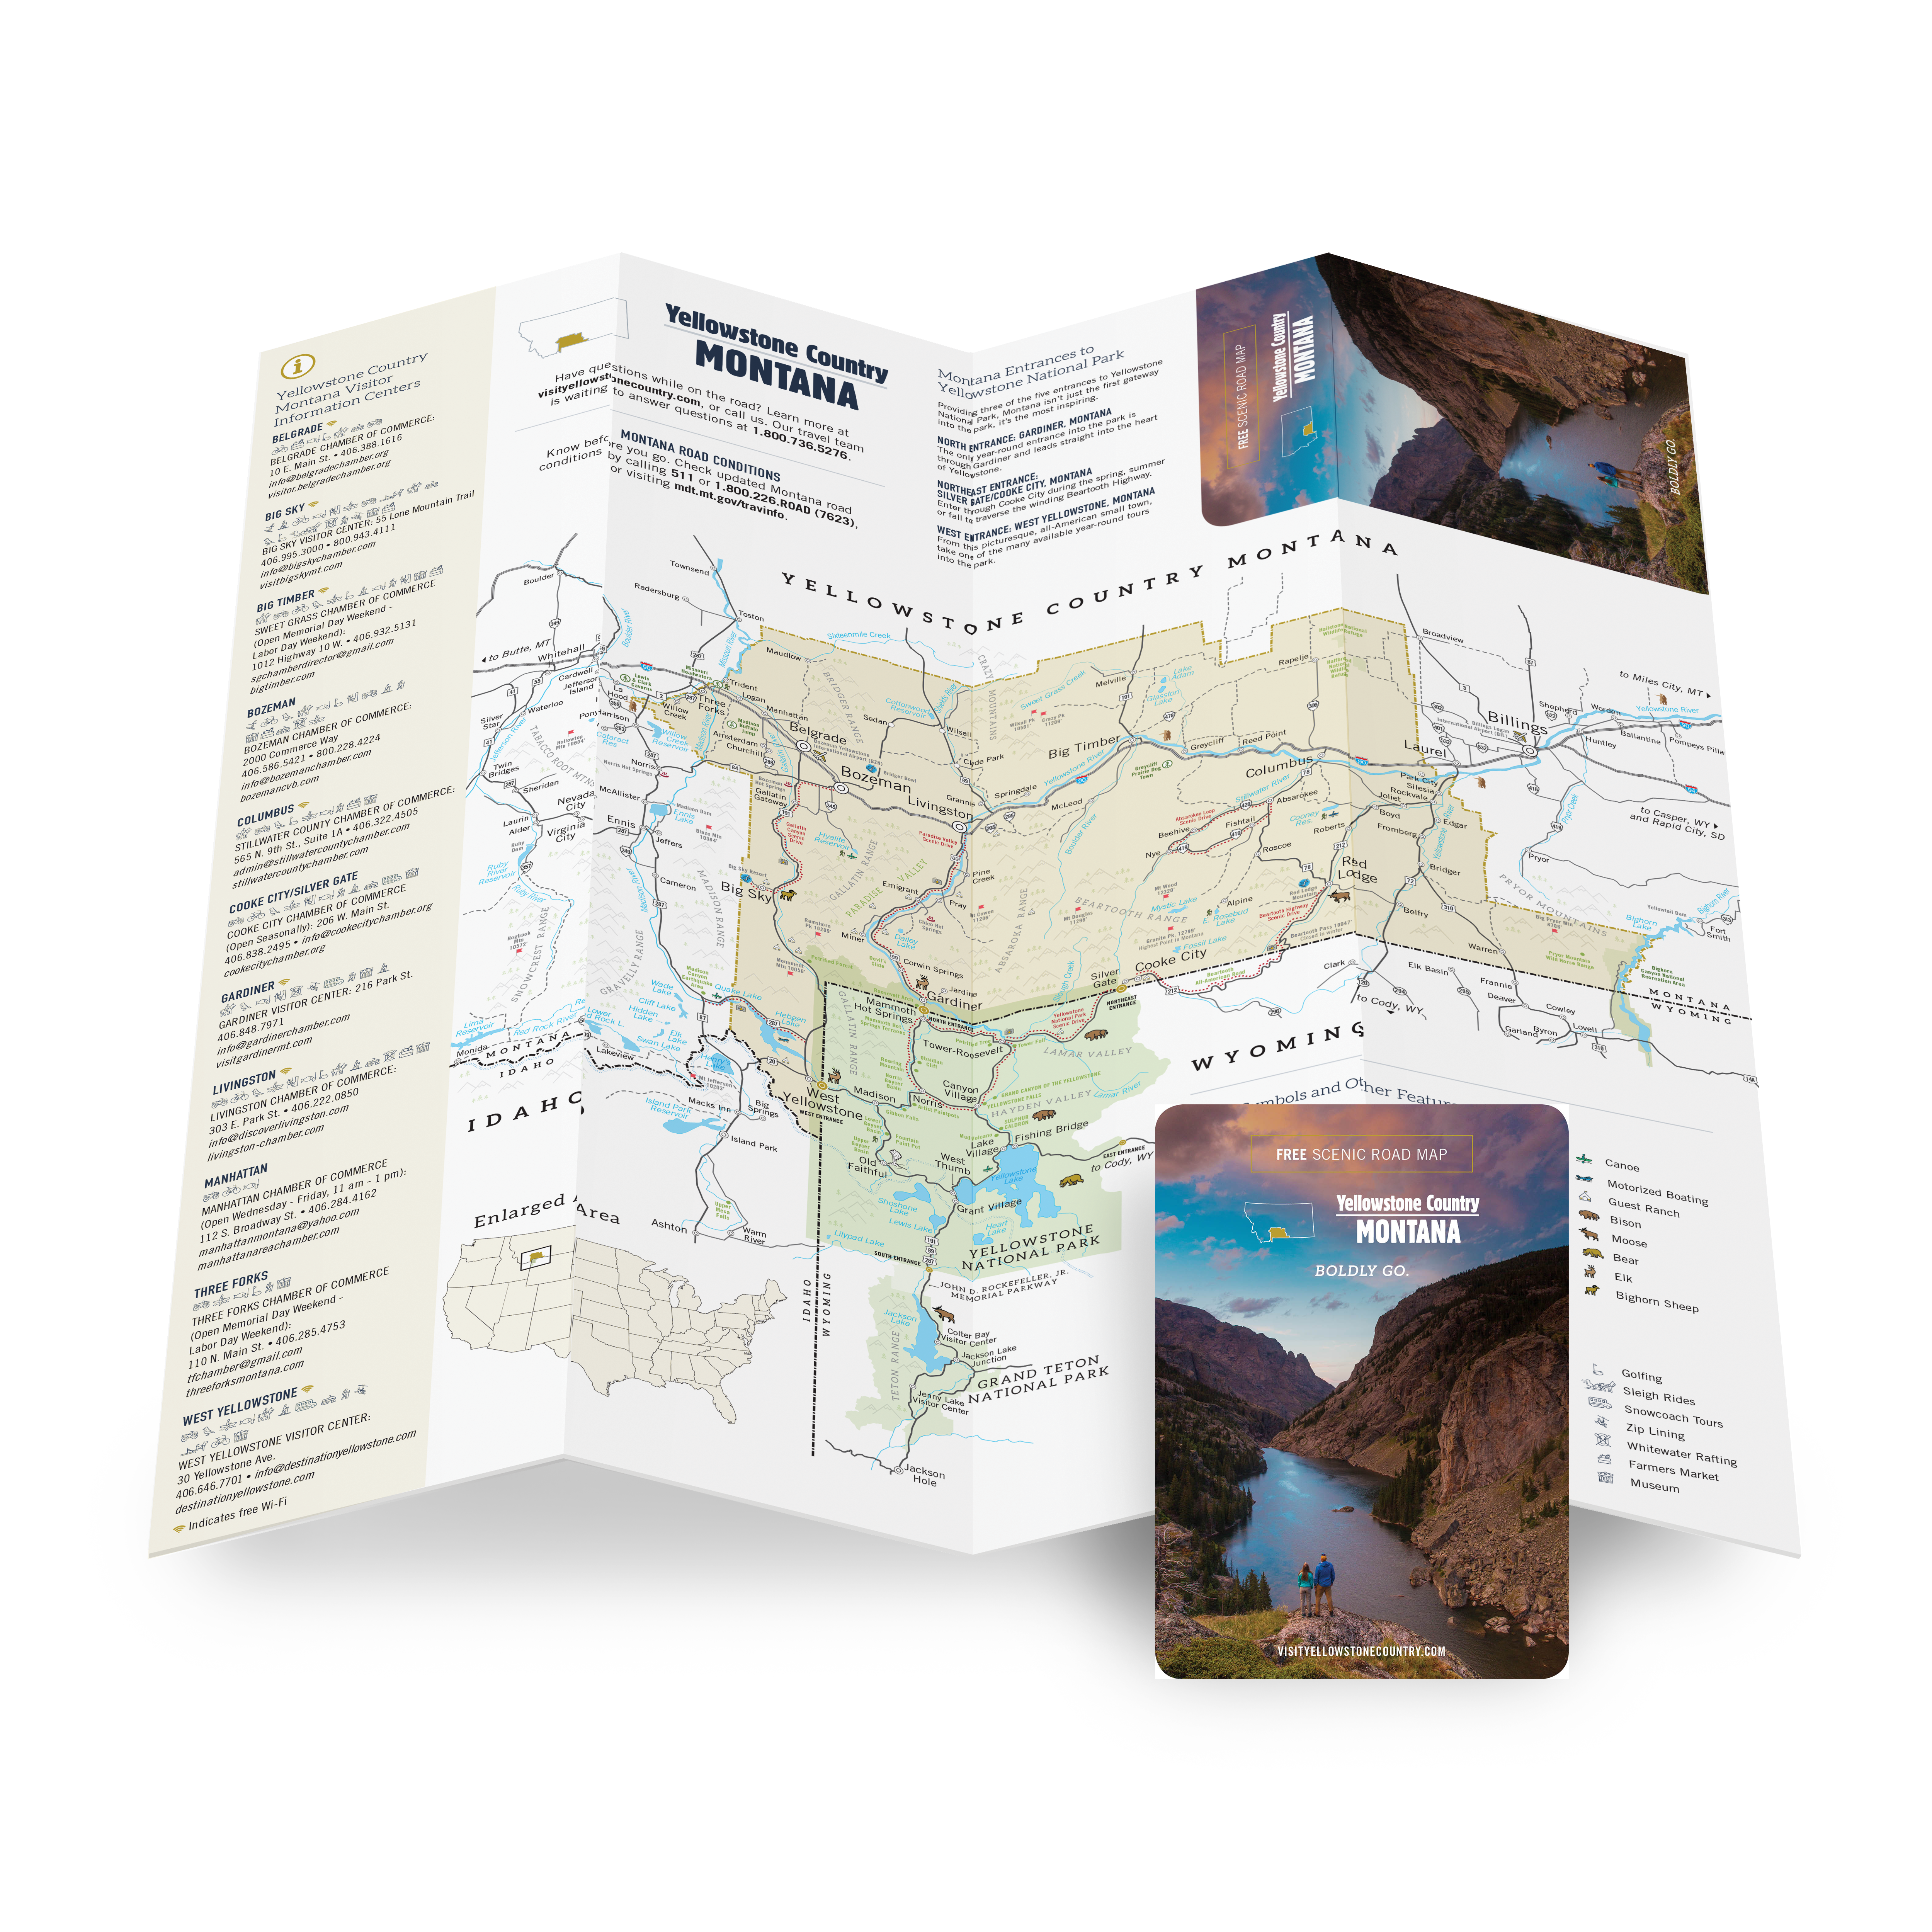 Download a PDF of the Yellowstone Country Montana Scenic Road Map covering southern Montana and Yellowstone National Park.